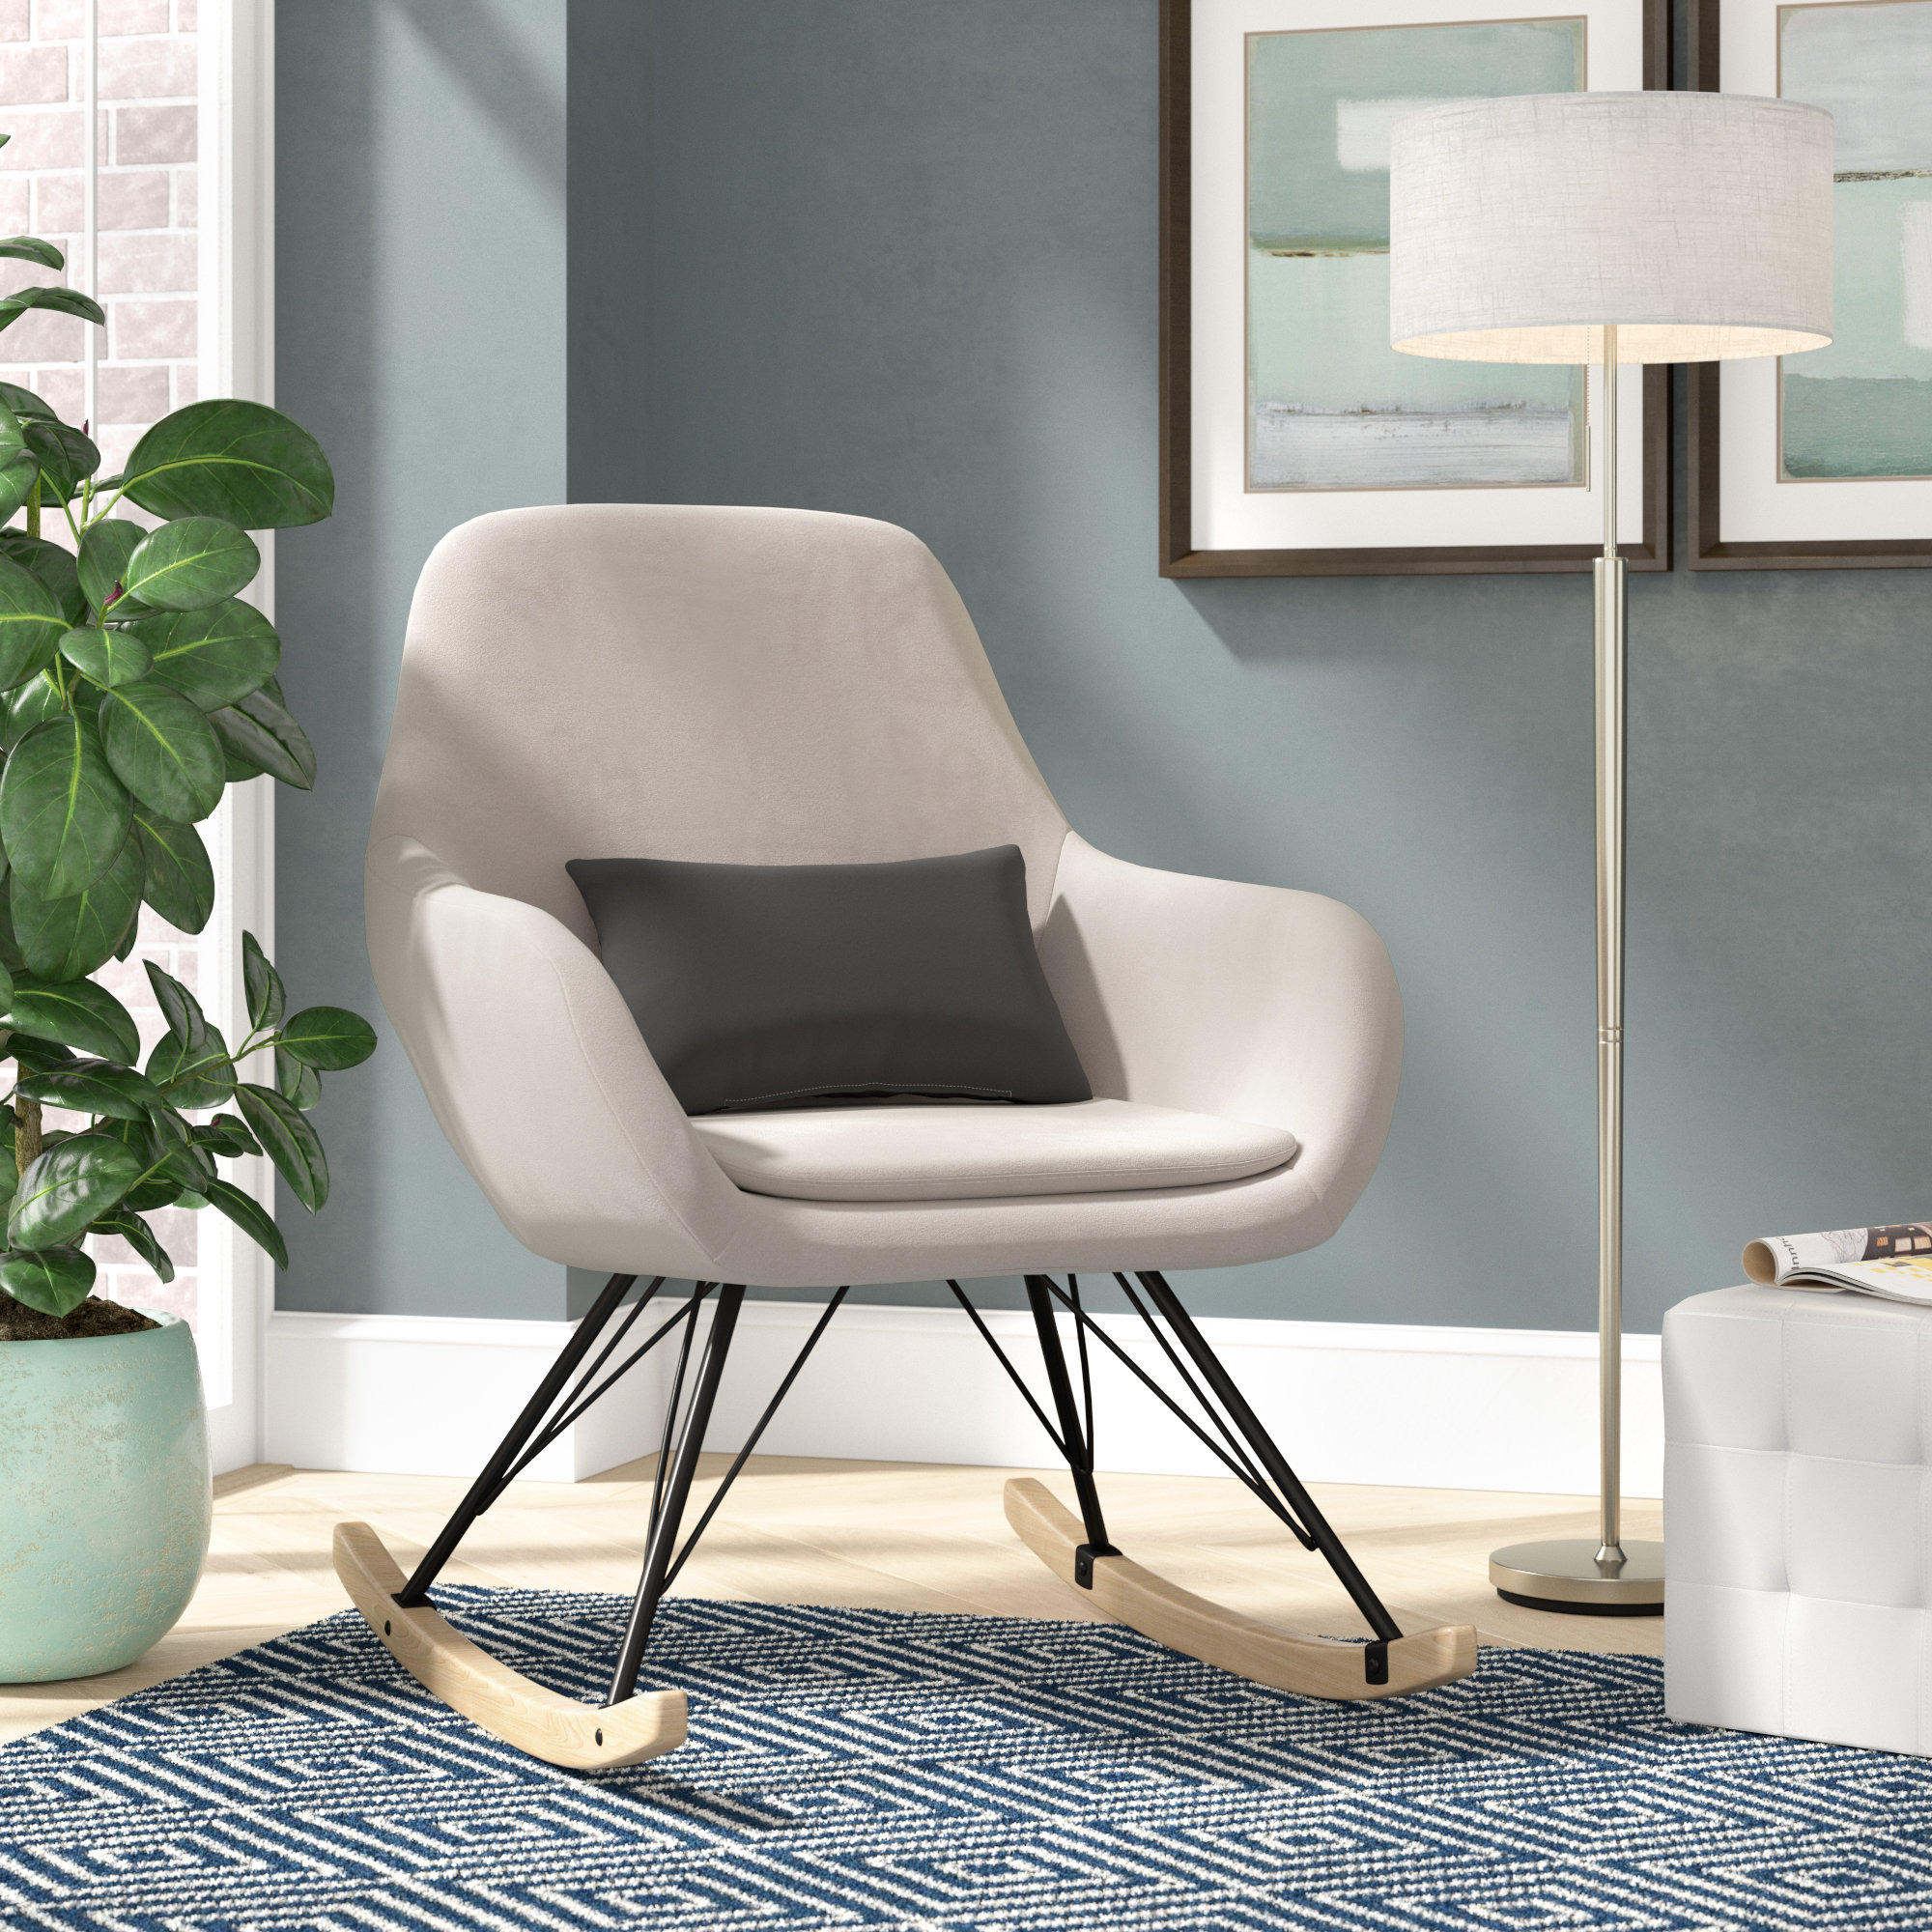 Brayden Studio Decker Rocking Chair & Reviews | Wayfair With Regard To Decker Ii Fabric Swivel Glider Recliners (Image 1 of 20)